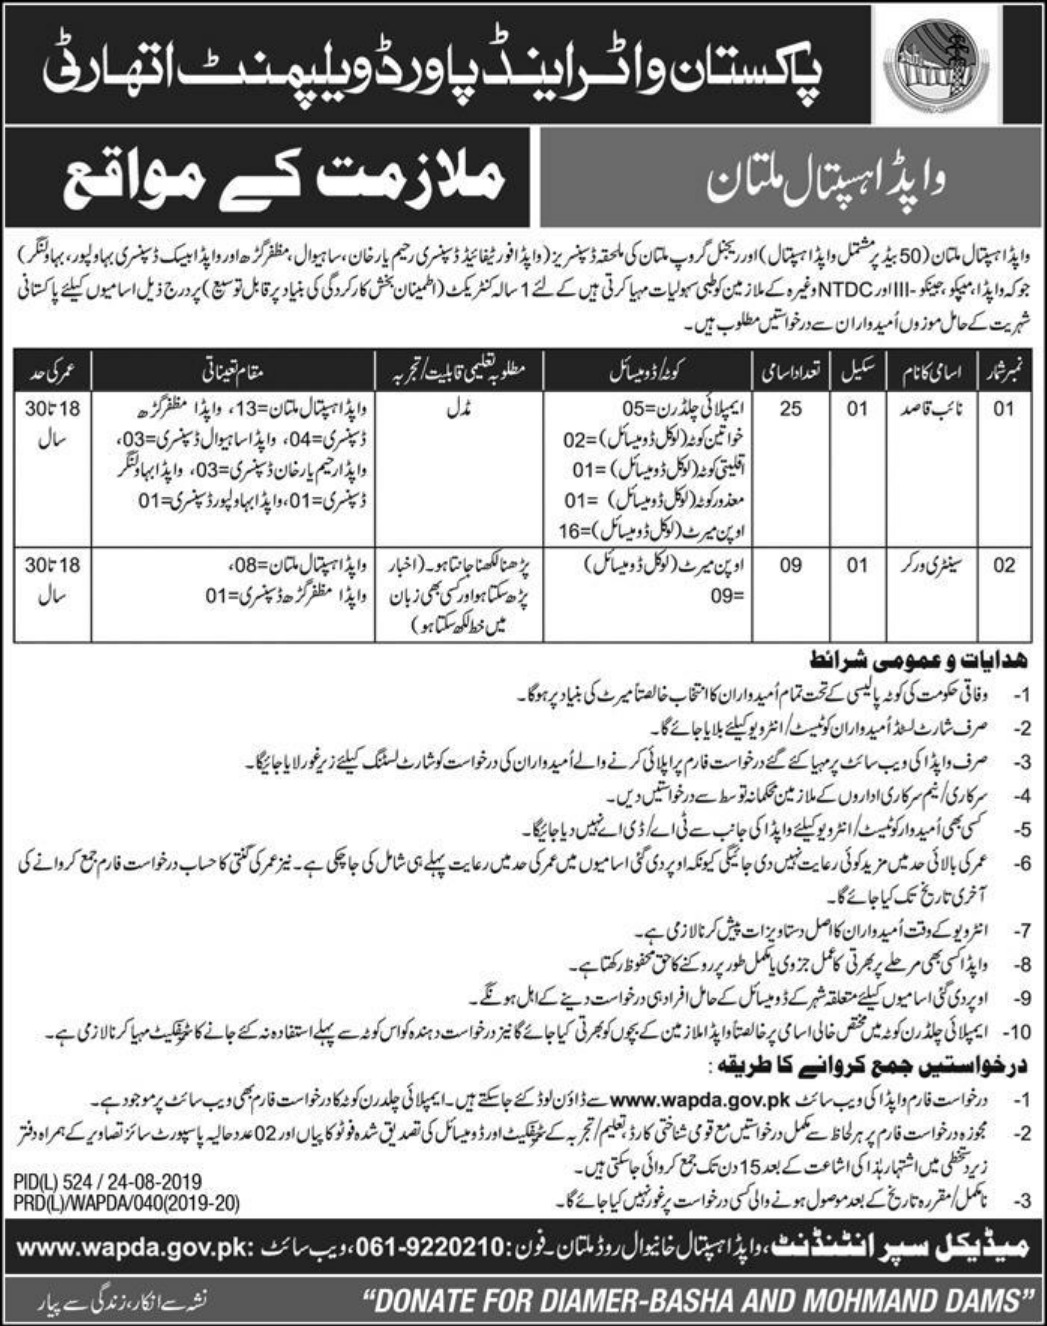 WAPDA Hospital Multan Jobs 2019 Download Application Form